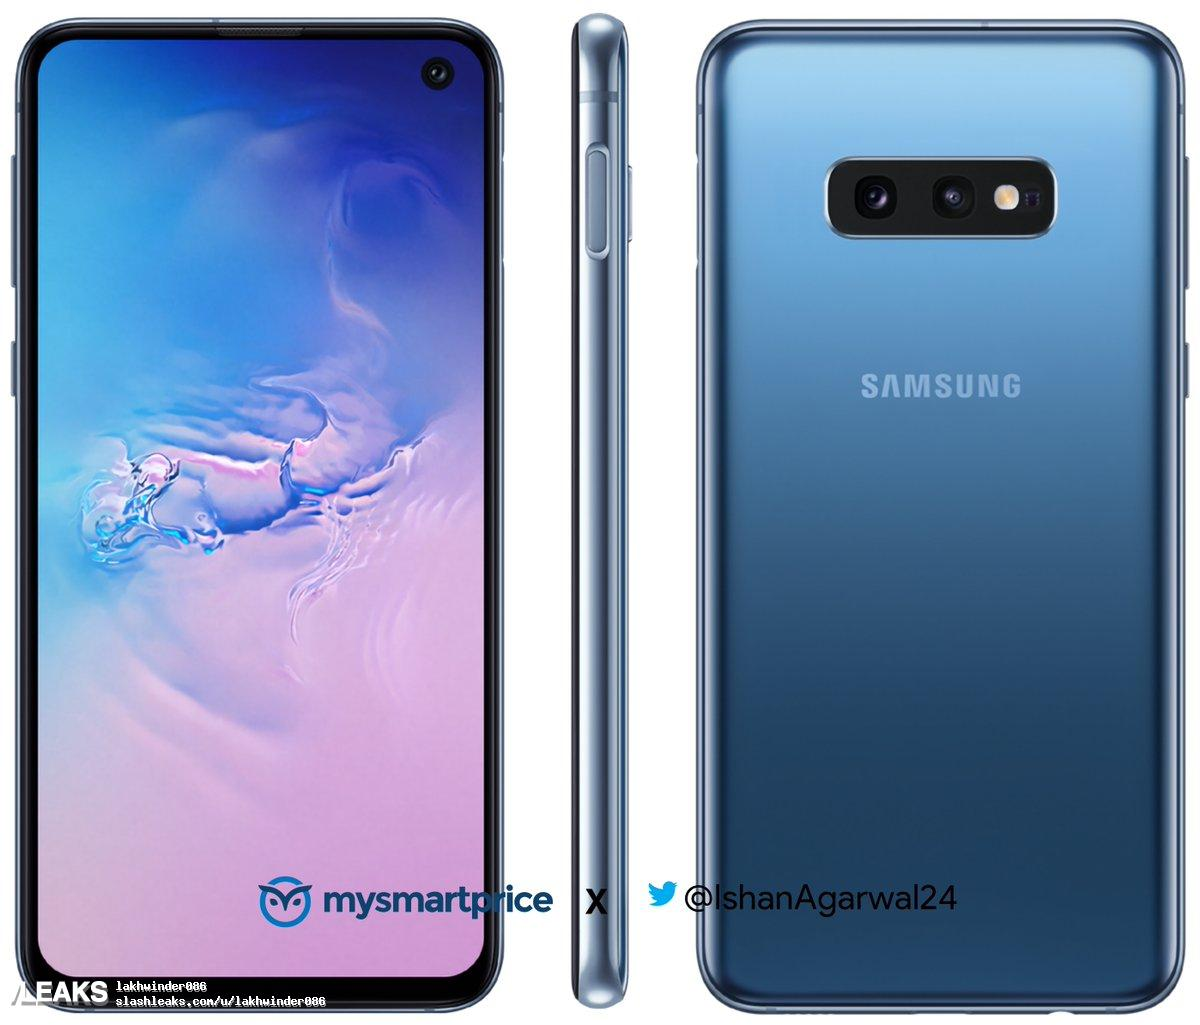 new-blue-colour-of-the-samsung-galaxy-s10-and-galaxy-s10e.jpg